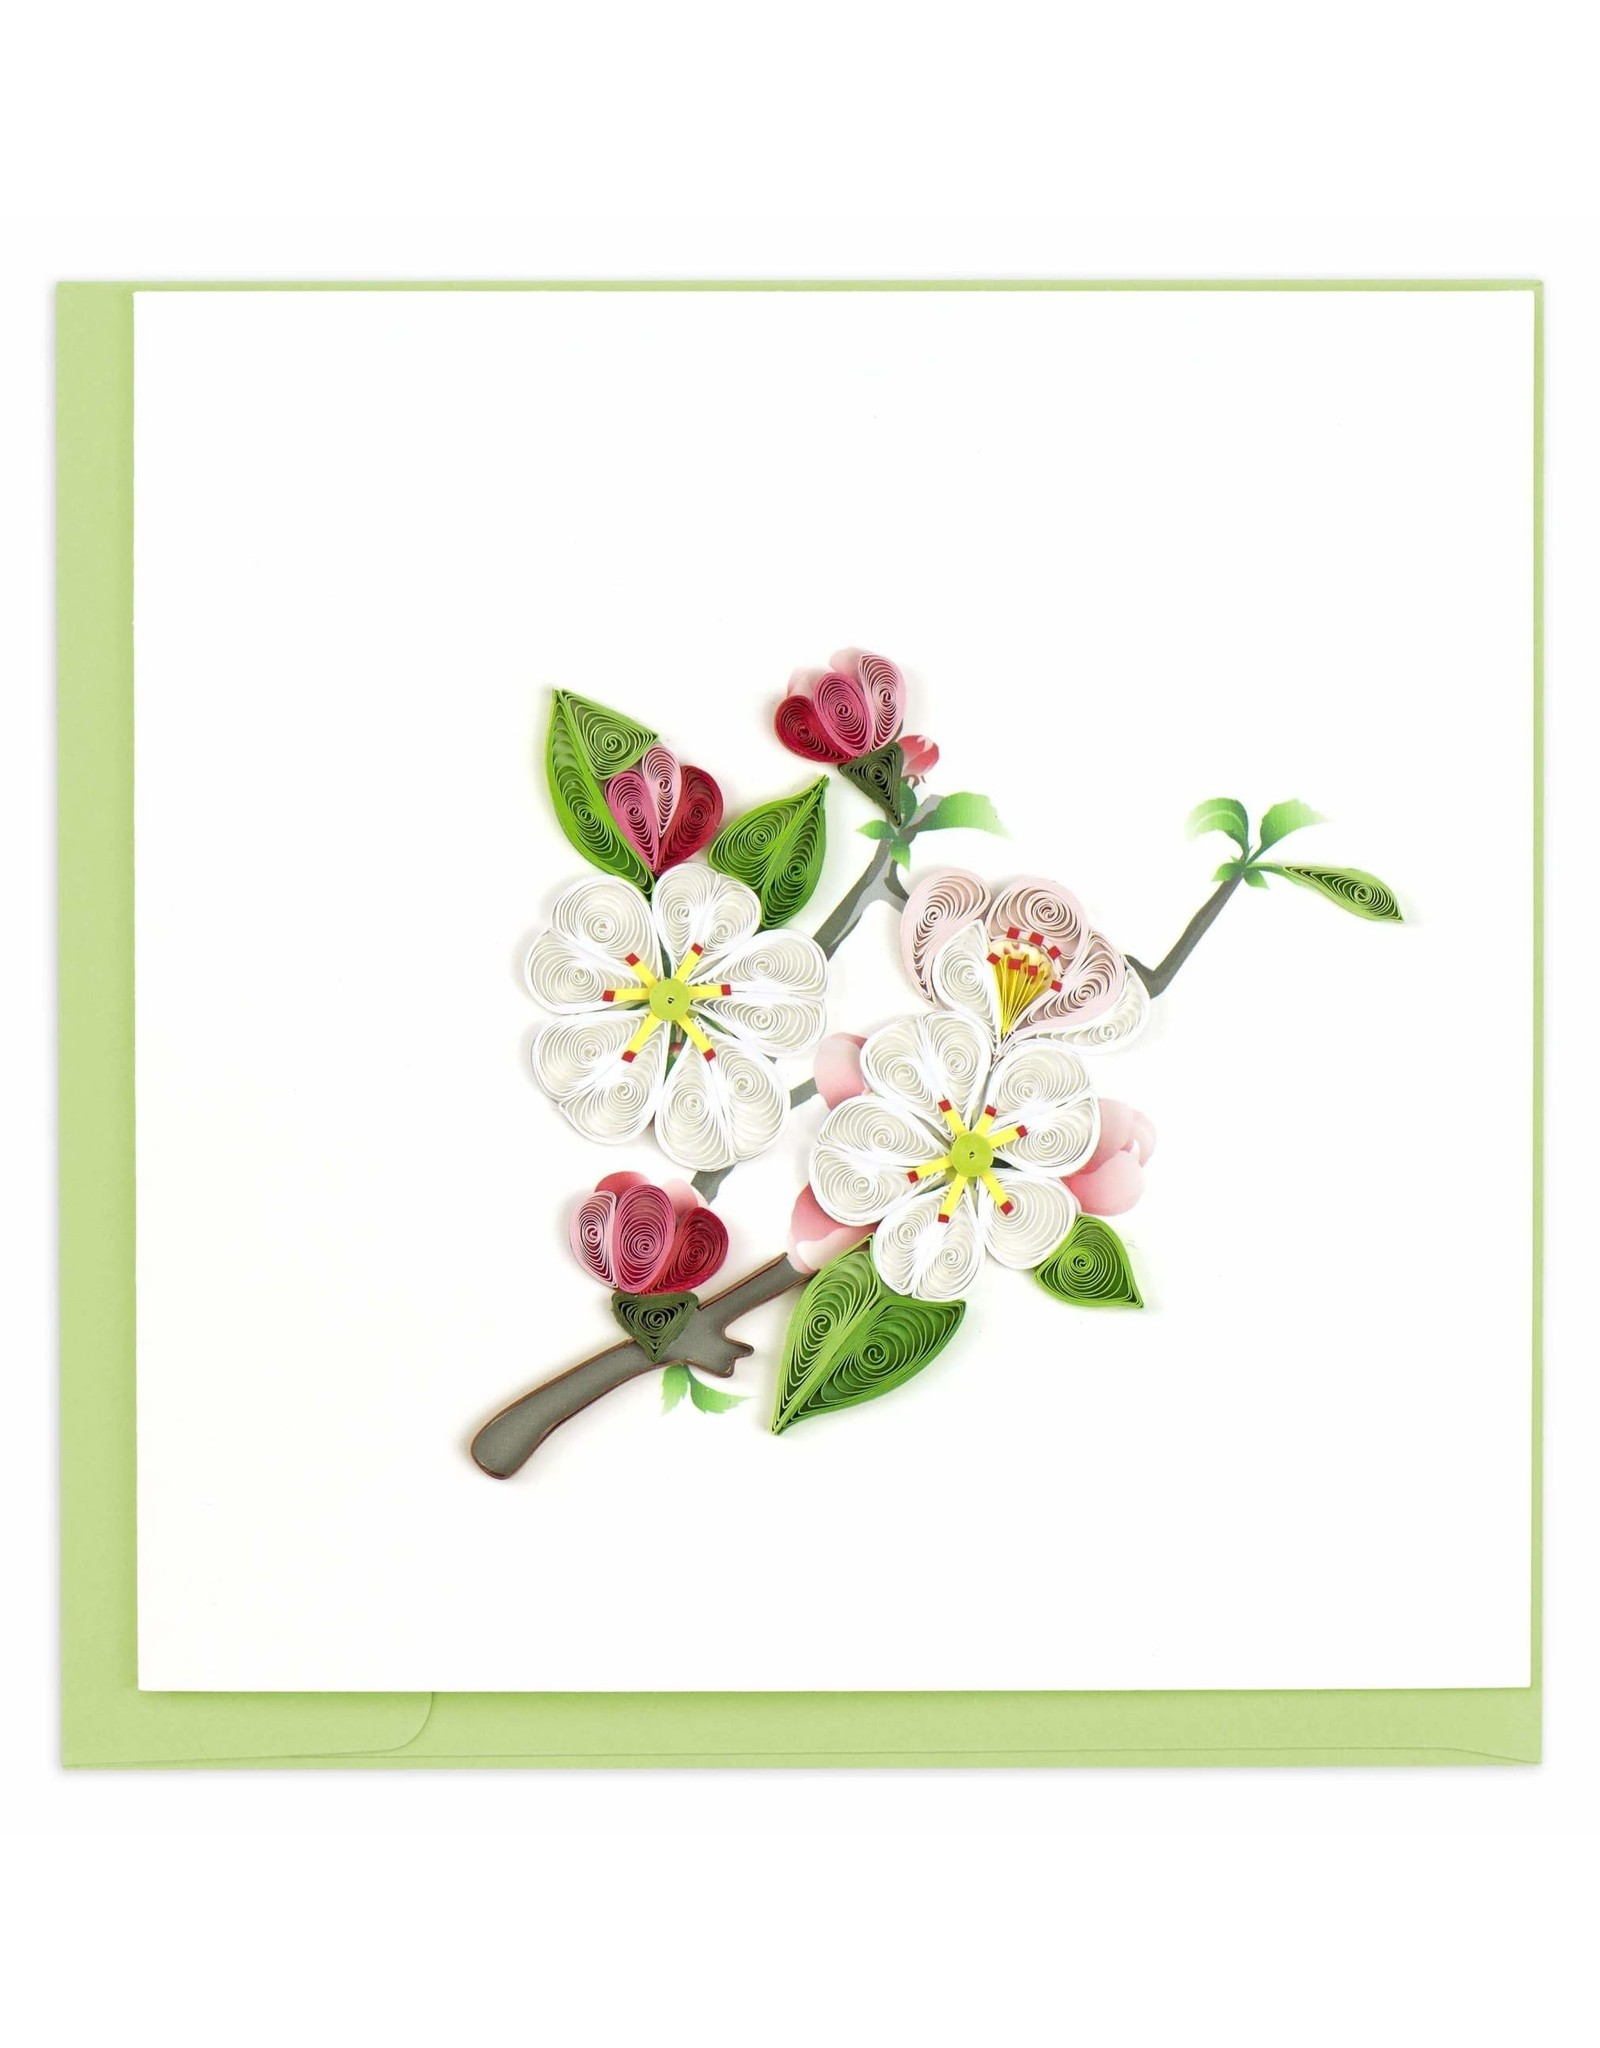 quillingcard Quilled Apple Blossom Card, Vietnam